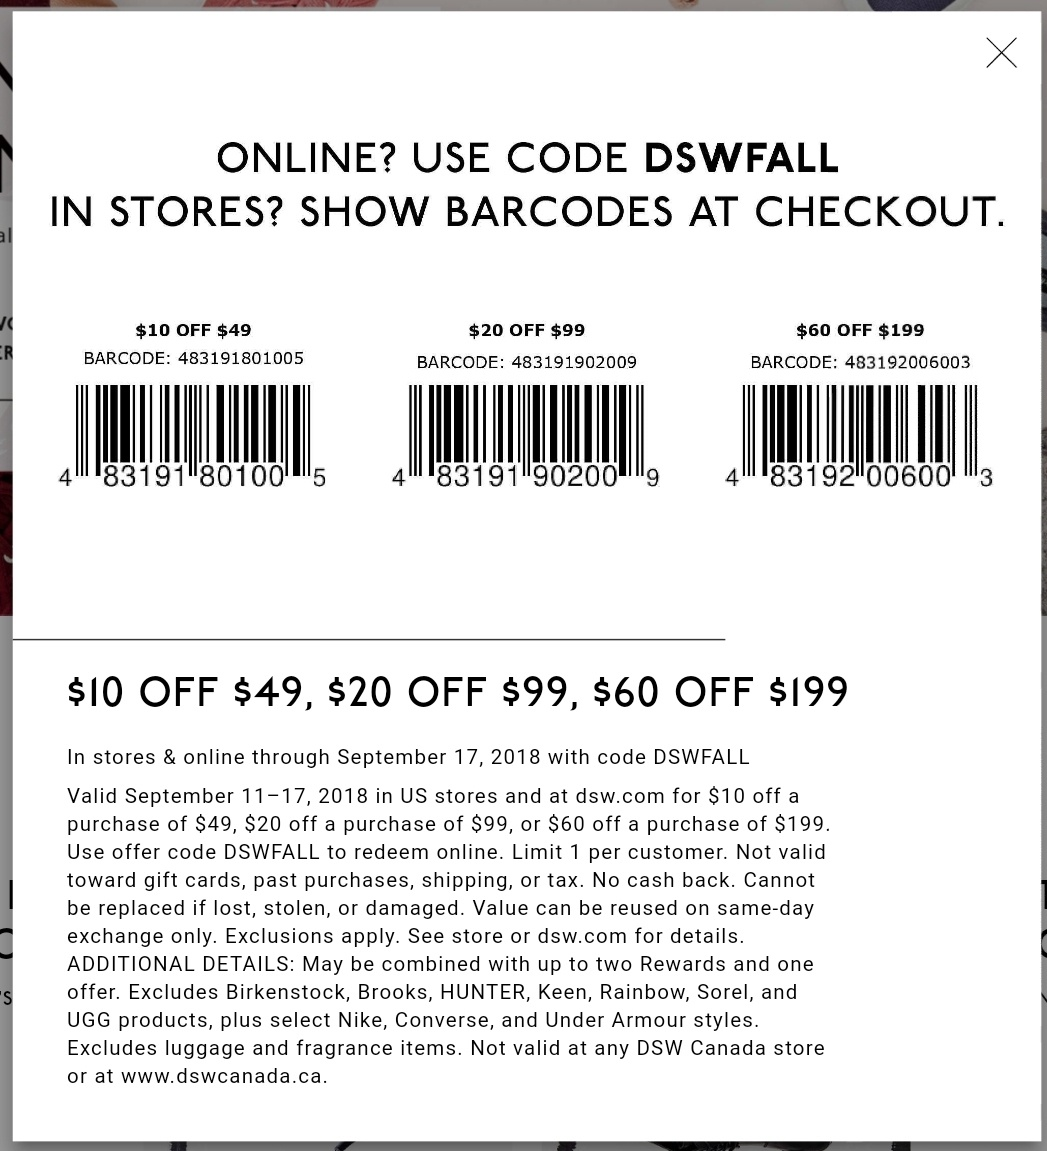 Dsw Printable Coupon - Printable Coupons 2019 - Free Printable - Free Printable Coupons For Dsw Shoes